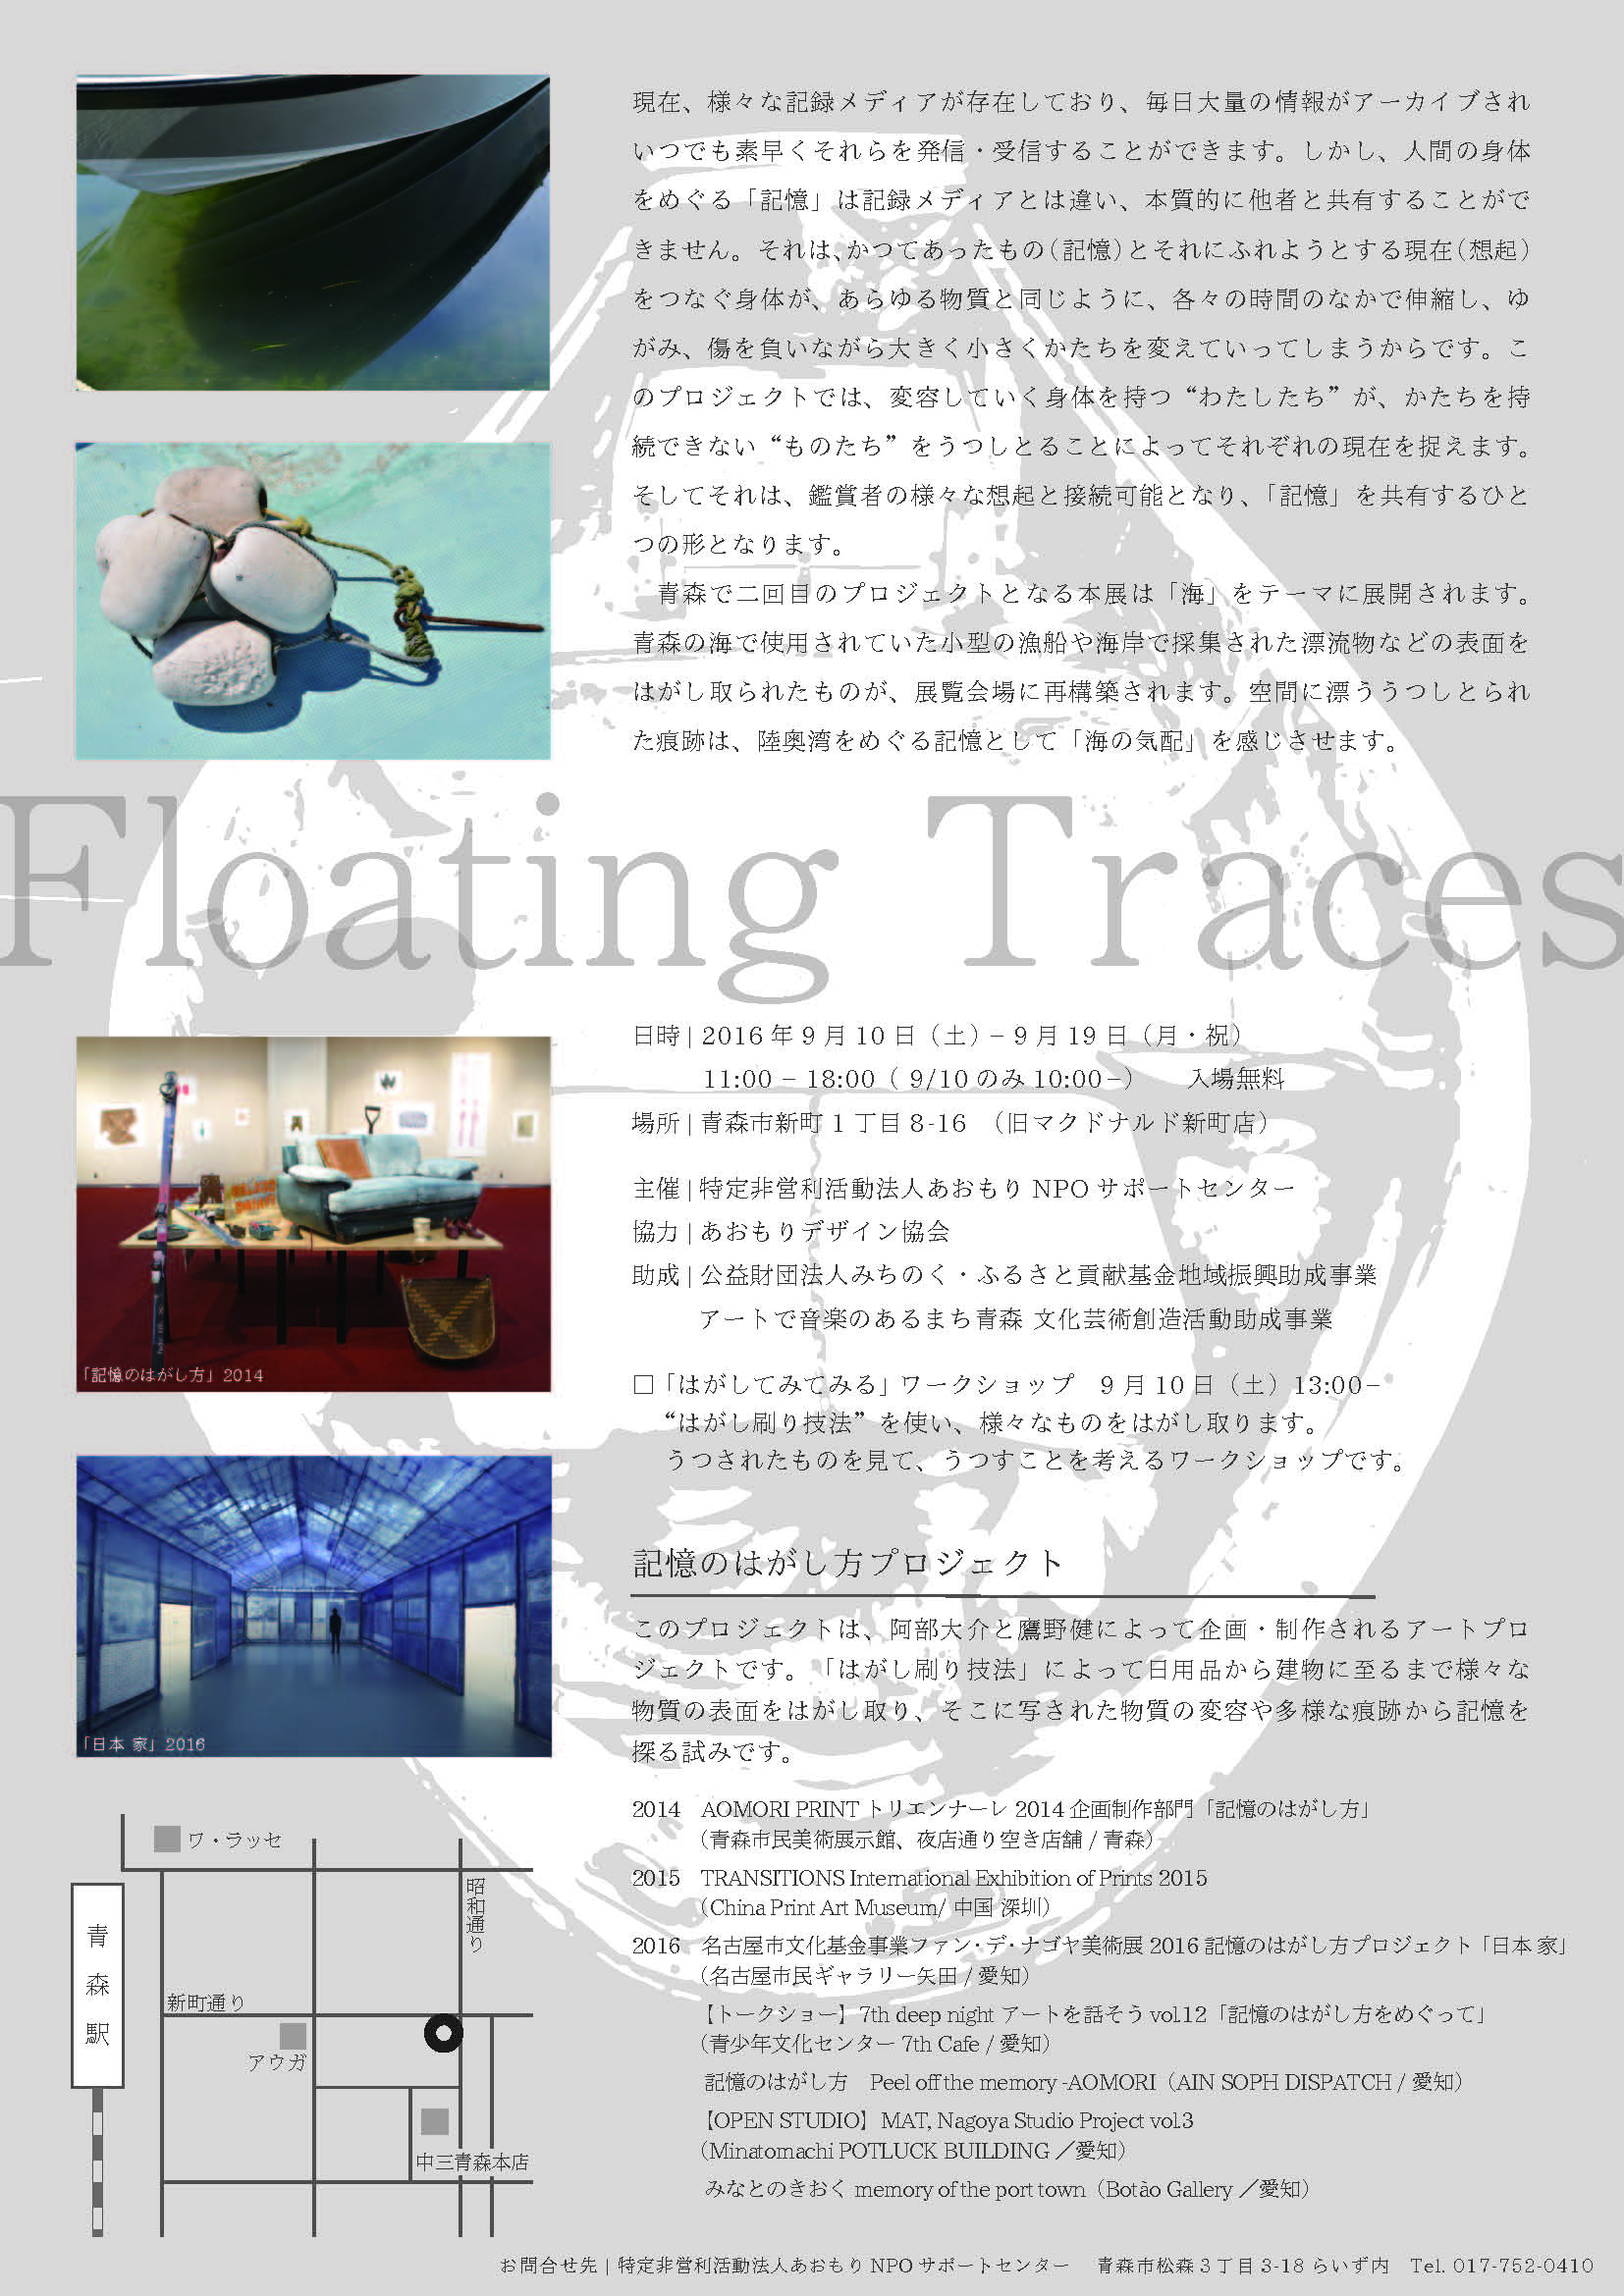 floating traces_ページ_2